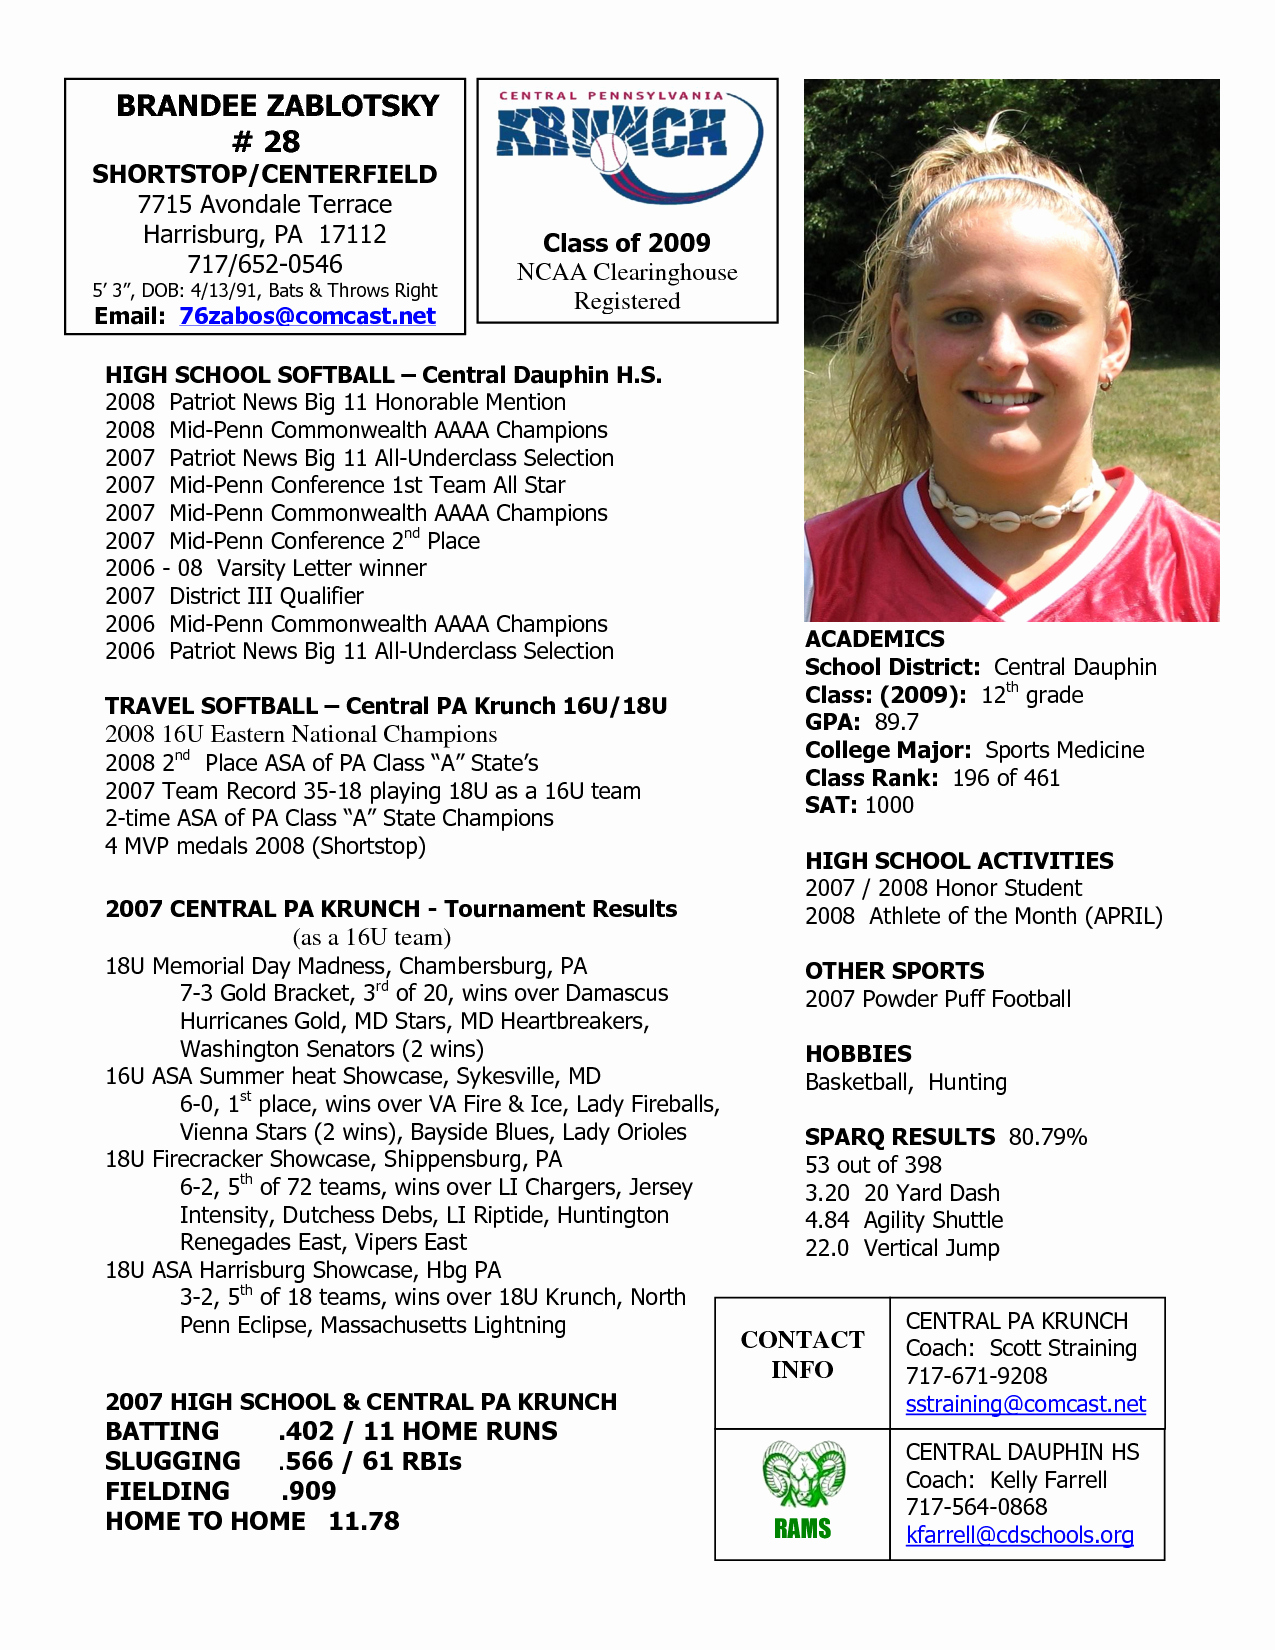 Student athlete Resume Example Fresh softball Profile Sample